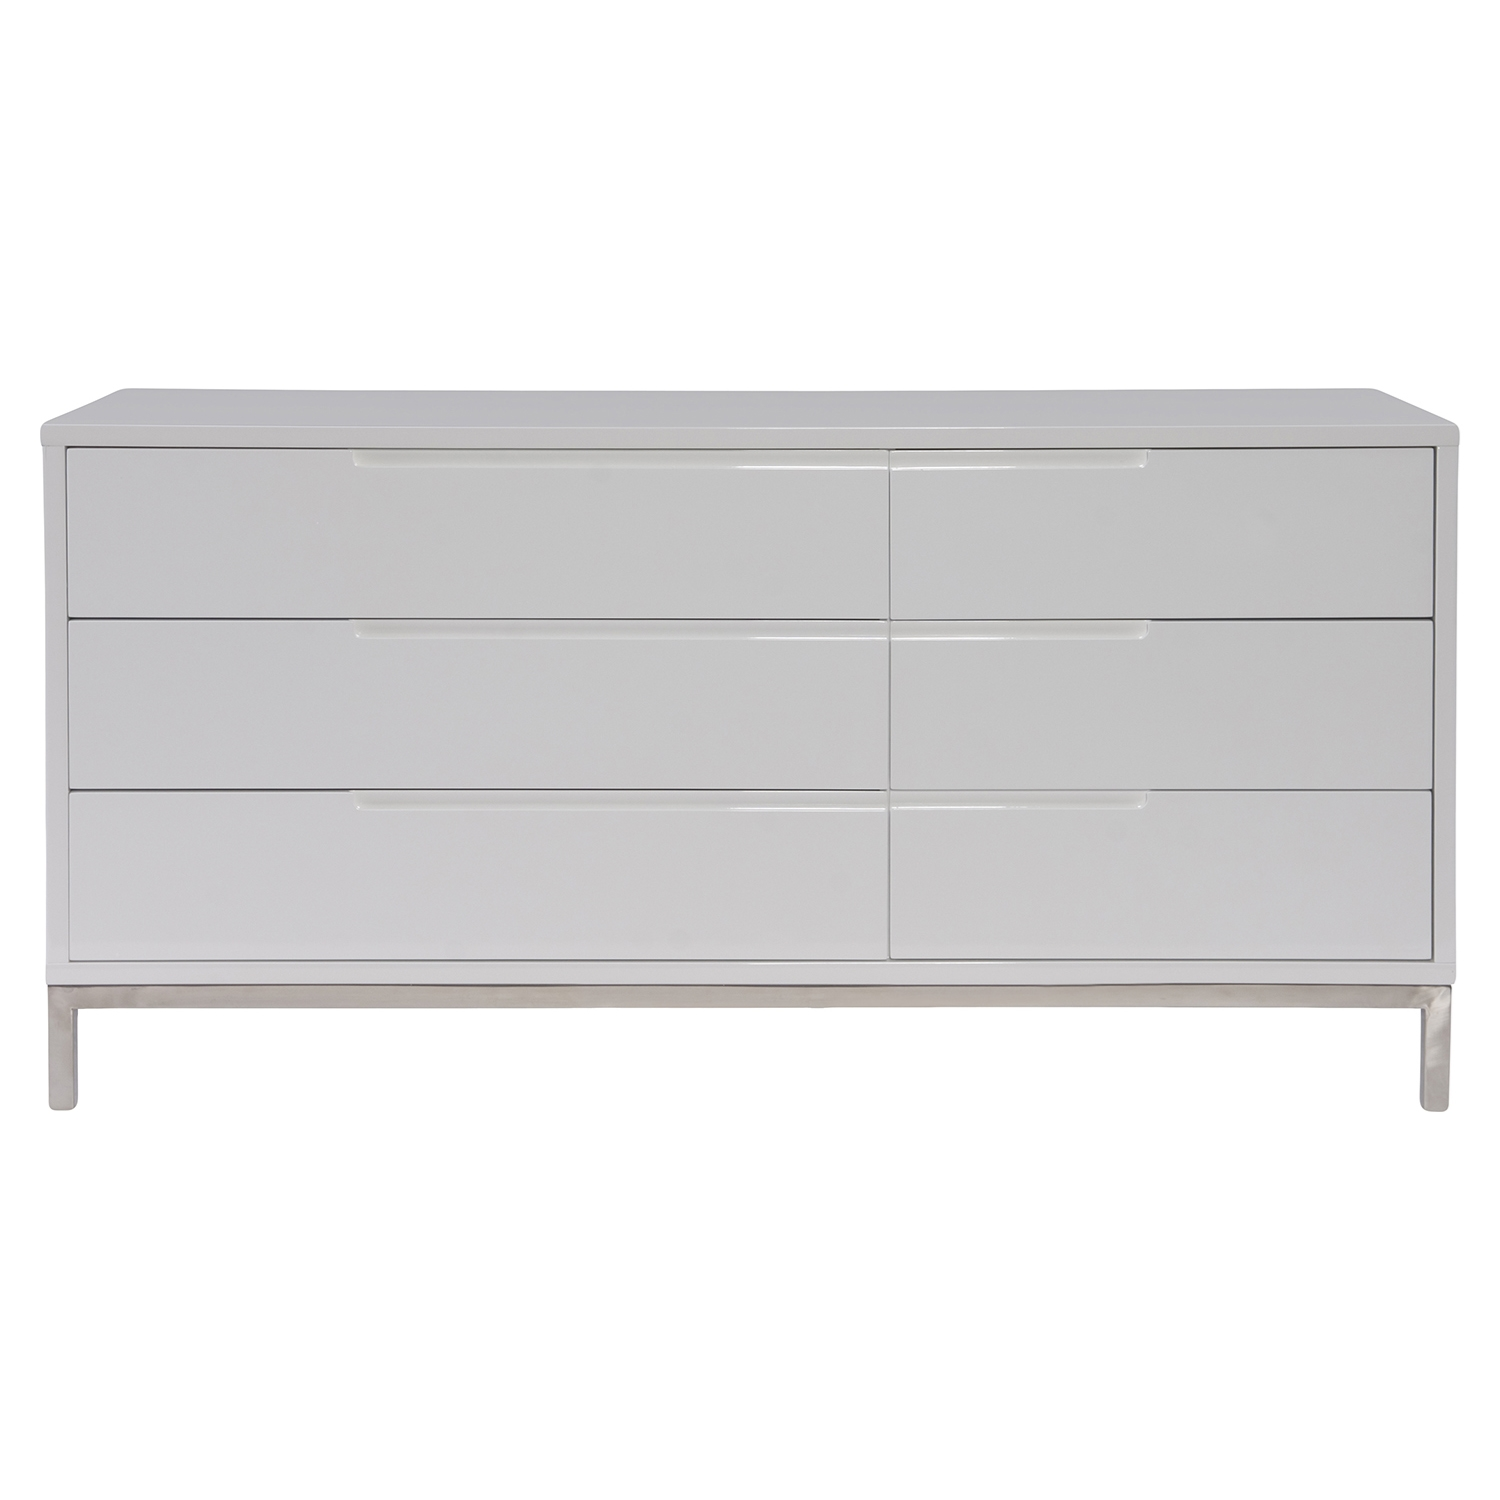 Naples Dresser - 6 Drawers, White - MOES-ER-1197-18